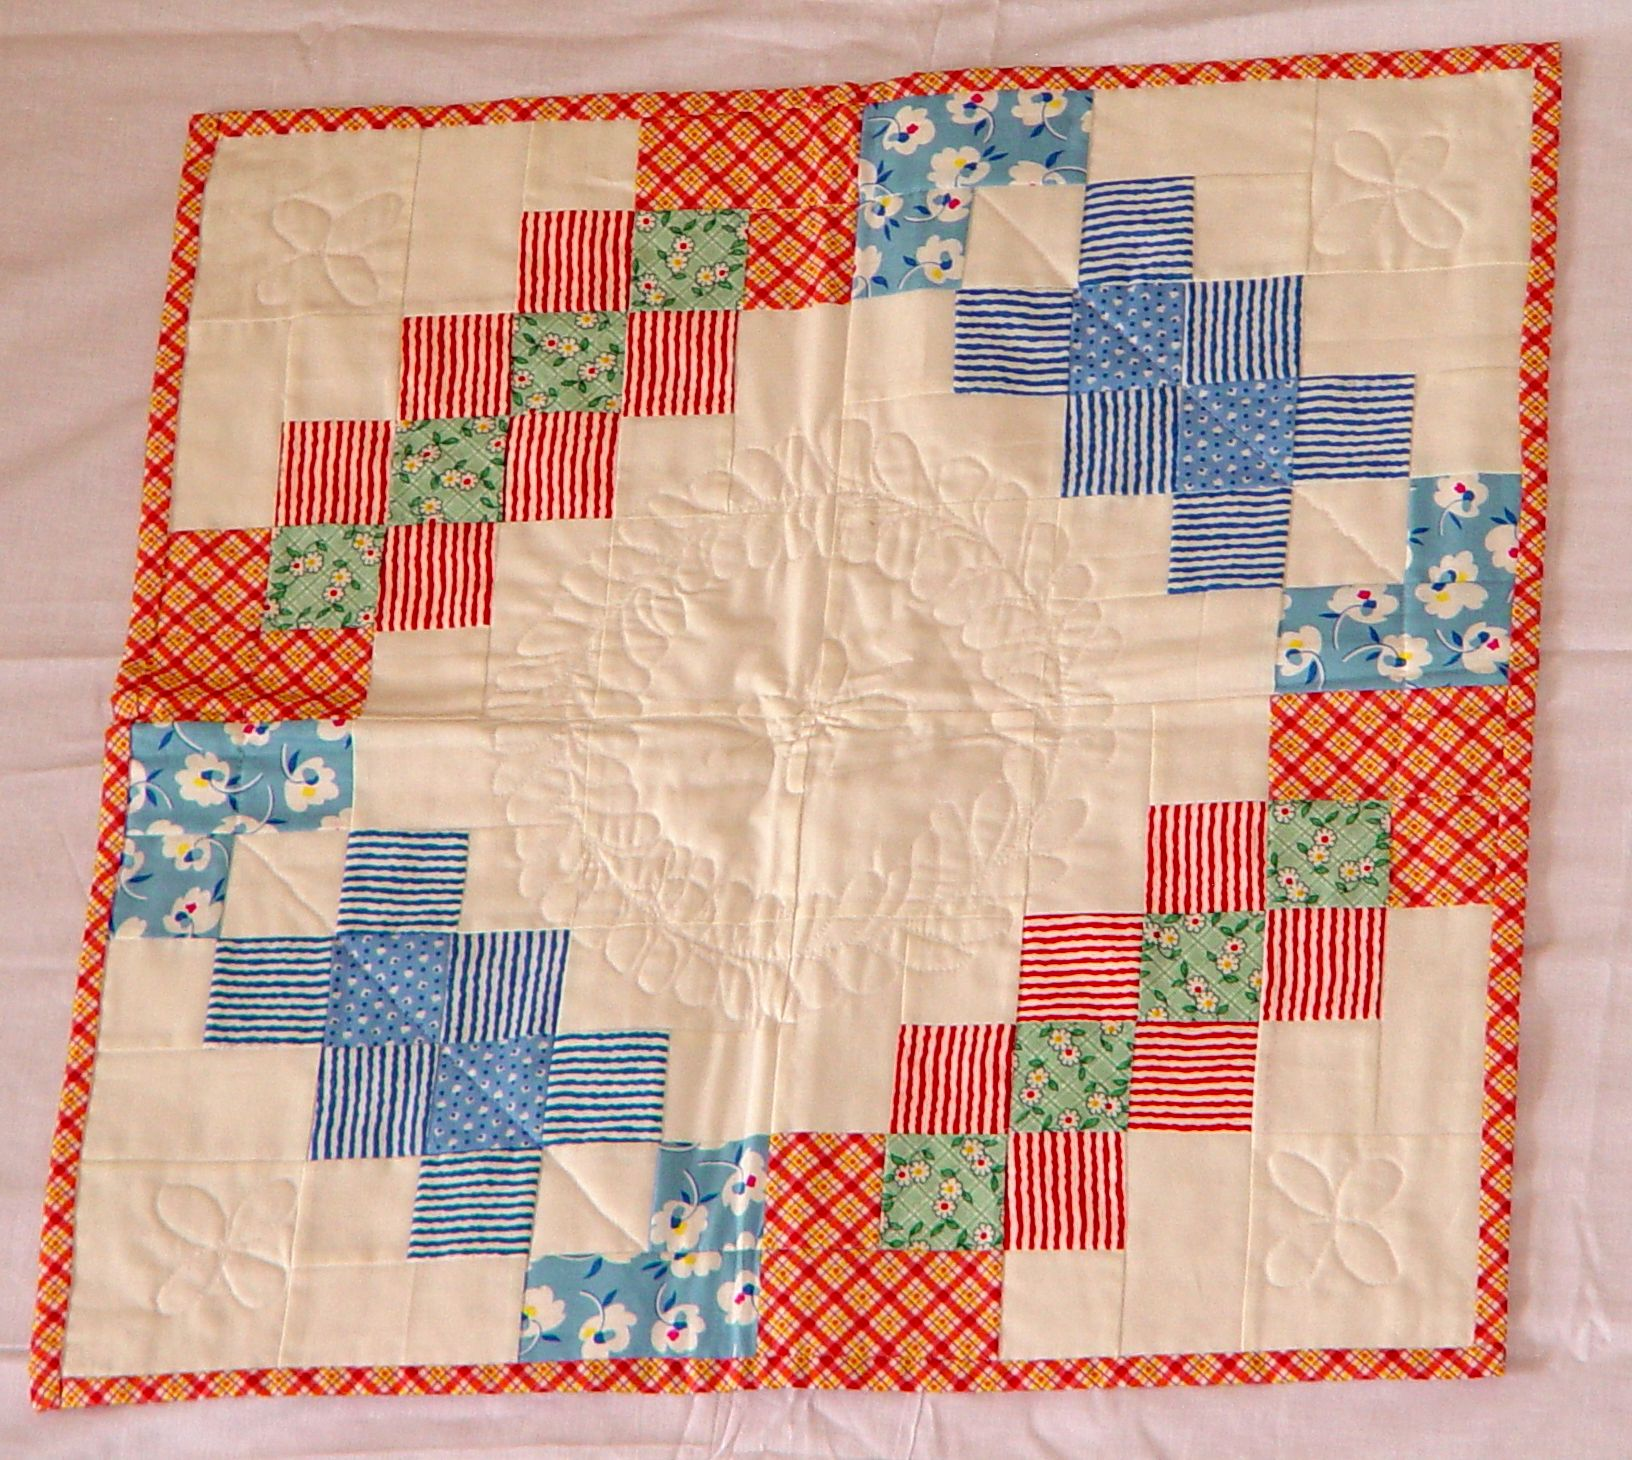 Custom baby quilt with a vintage look.   quilts   Pinterest   Baby ... : custom baby quilts - Adamdwight.com